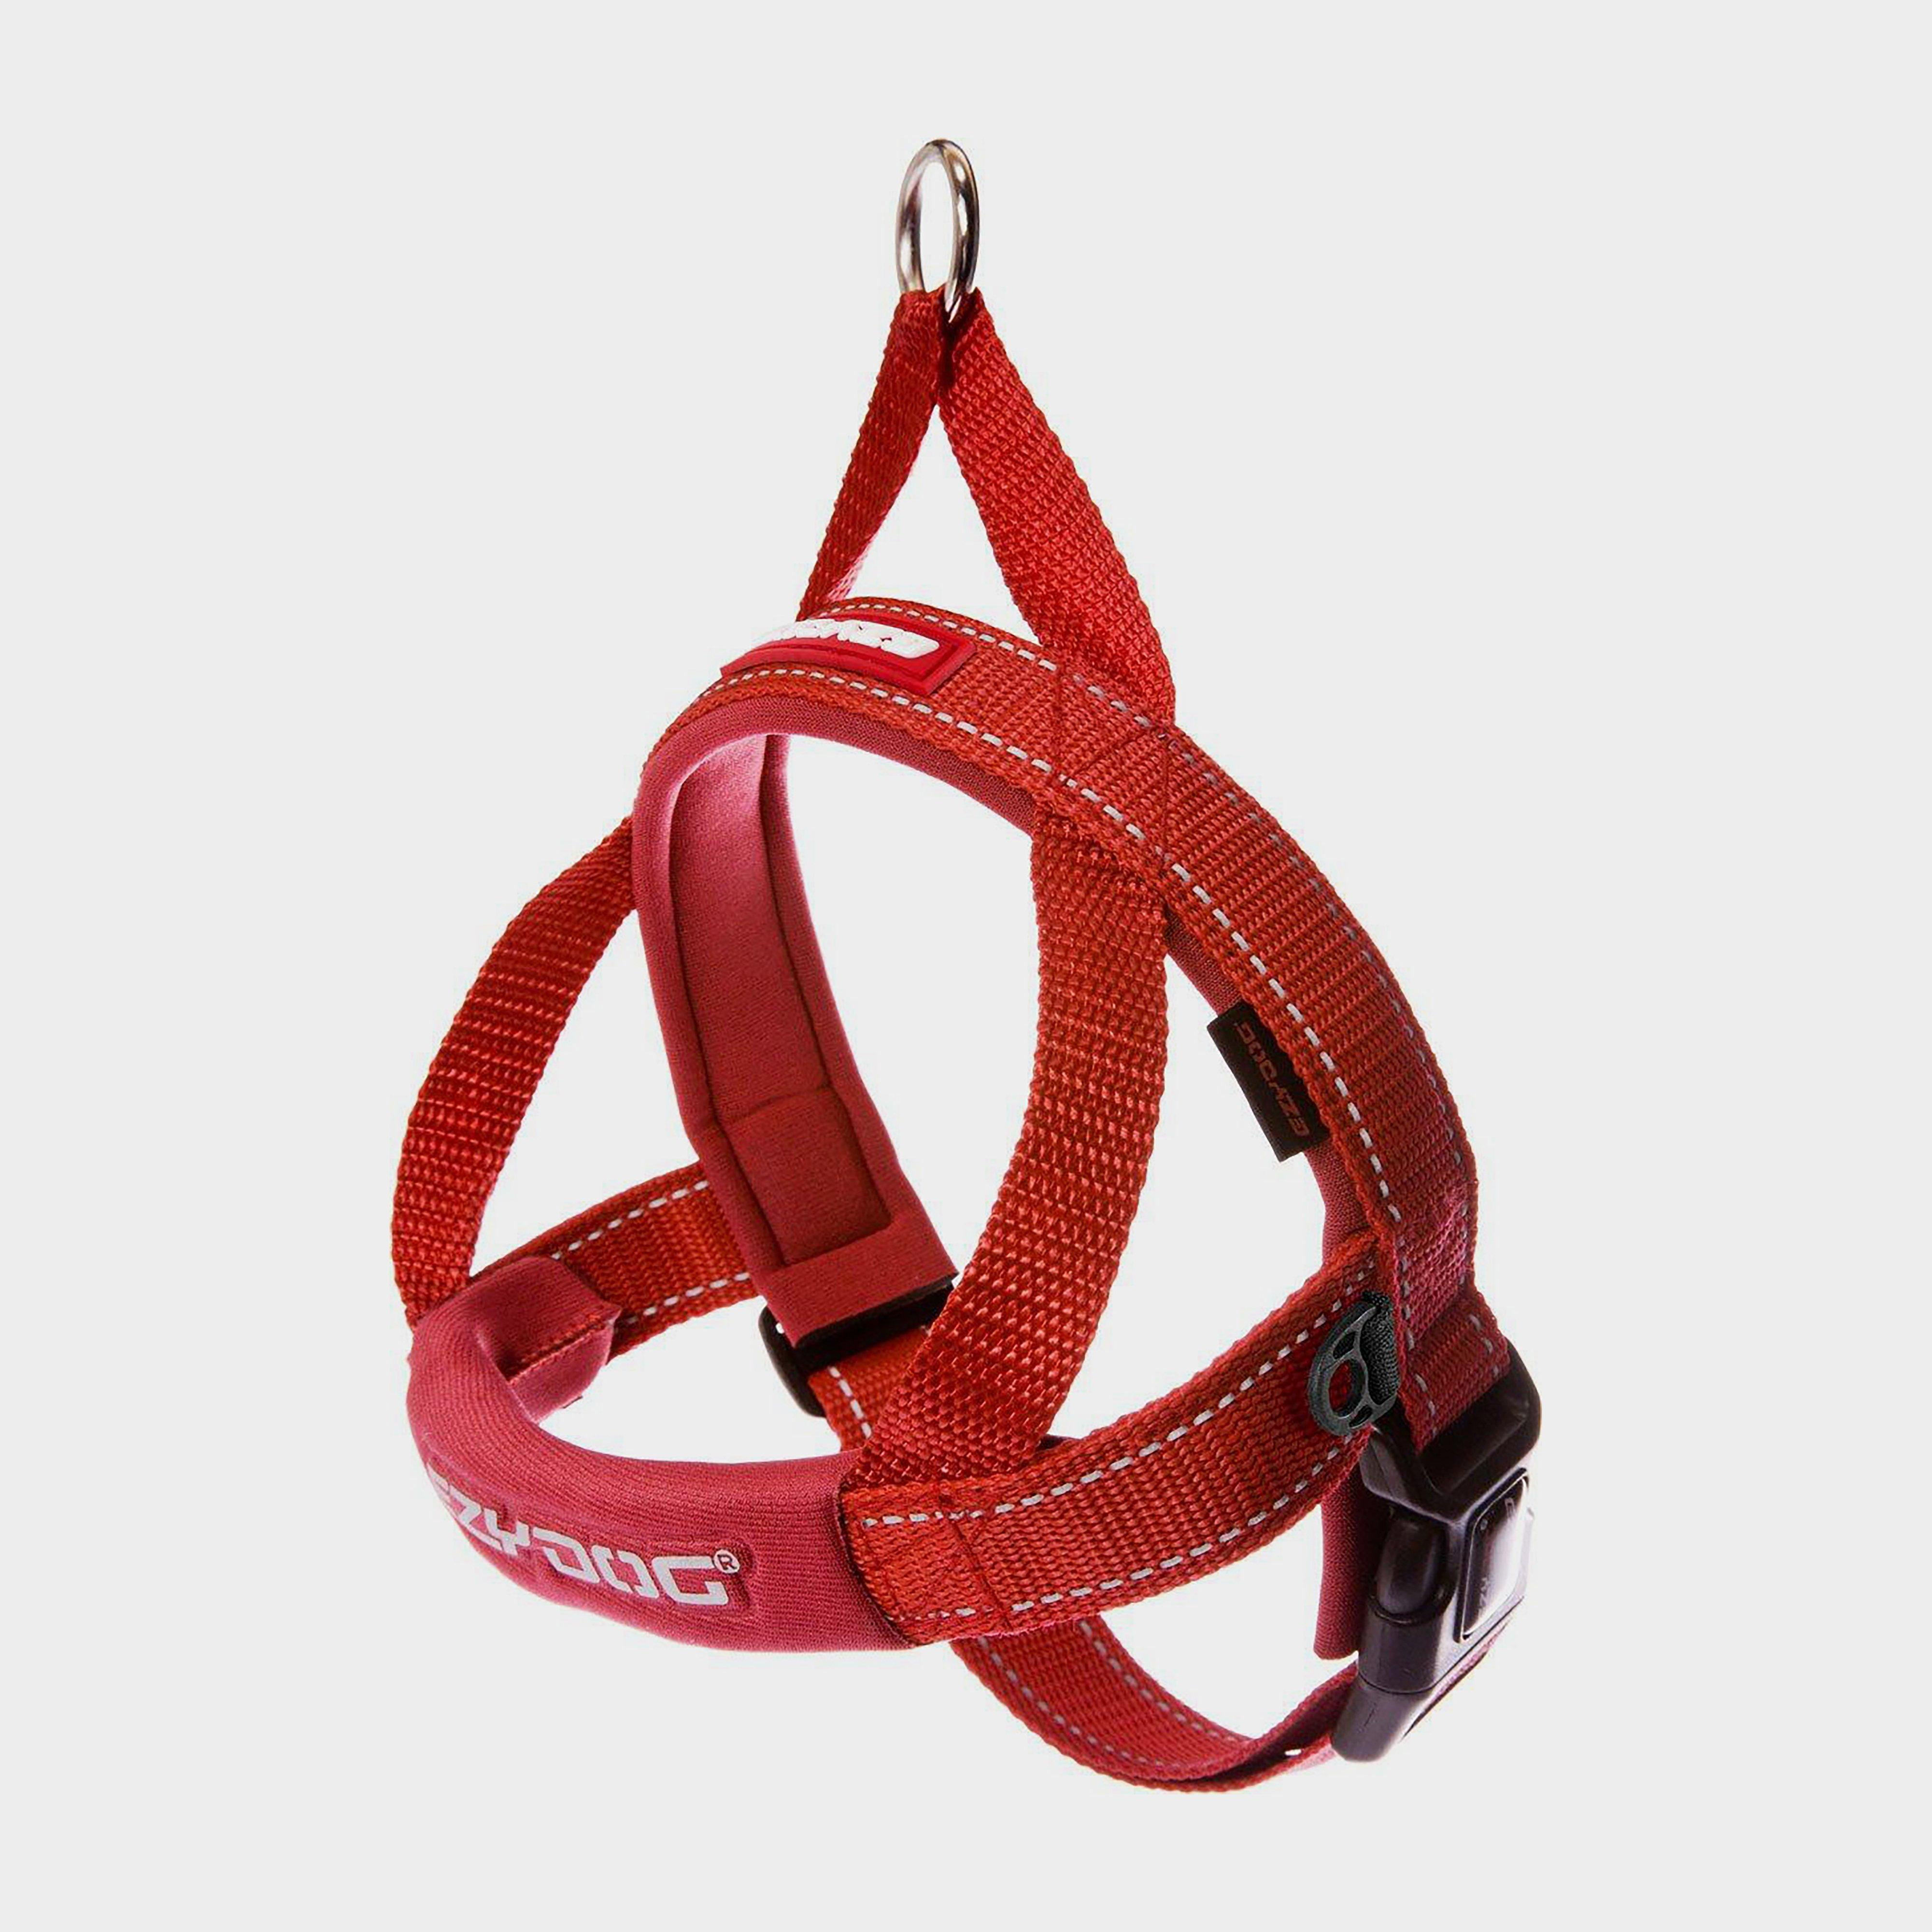 Image of Ezy-Dog Quick Fit Harness (Xl) - Harness/Harness, HARNESS/HARNESS